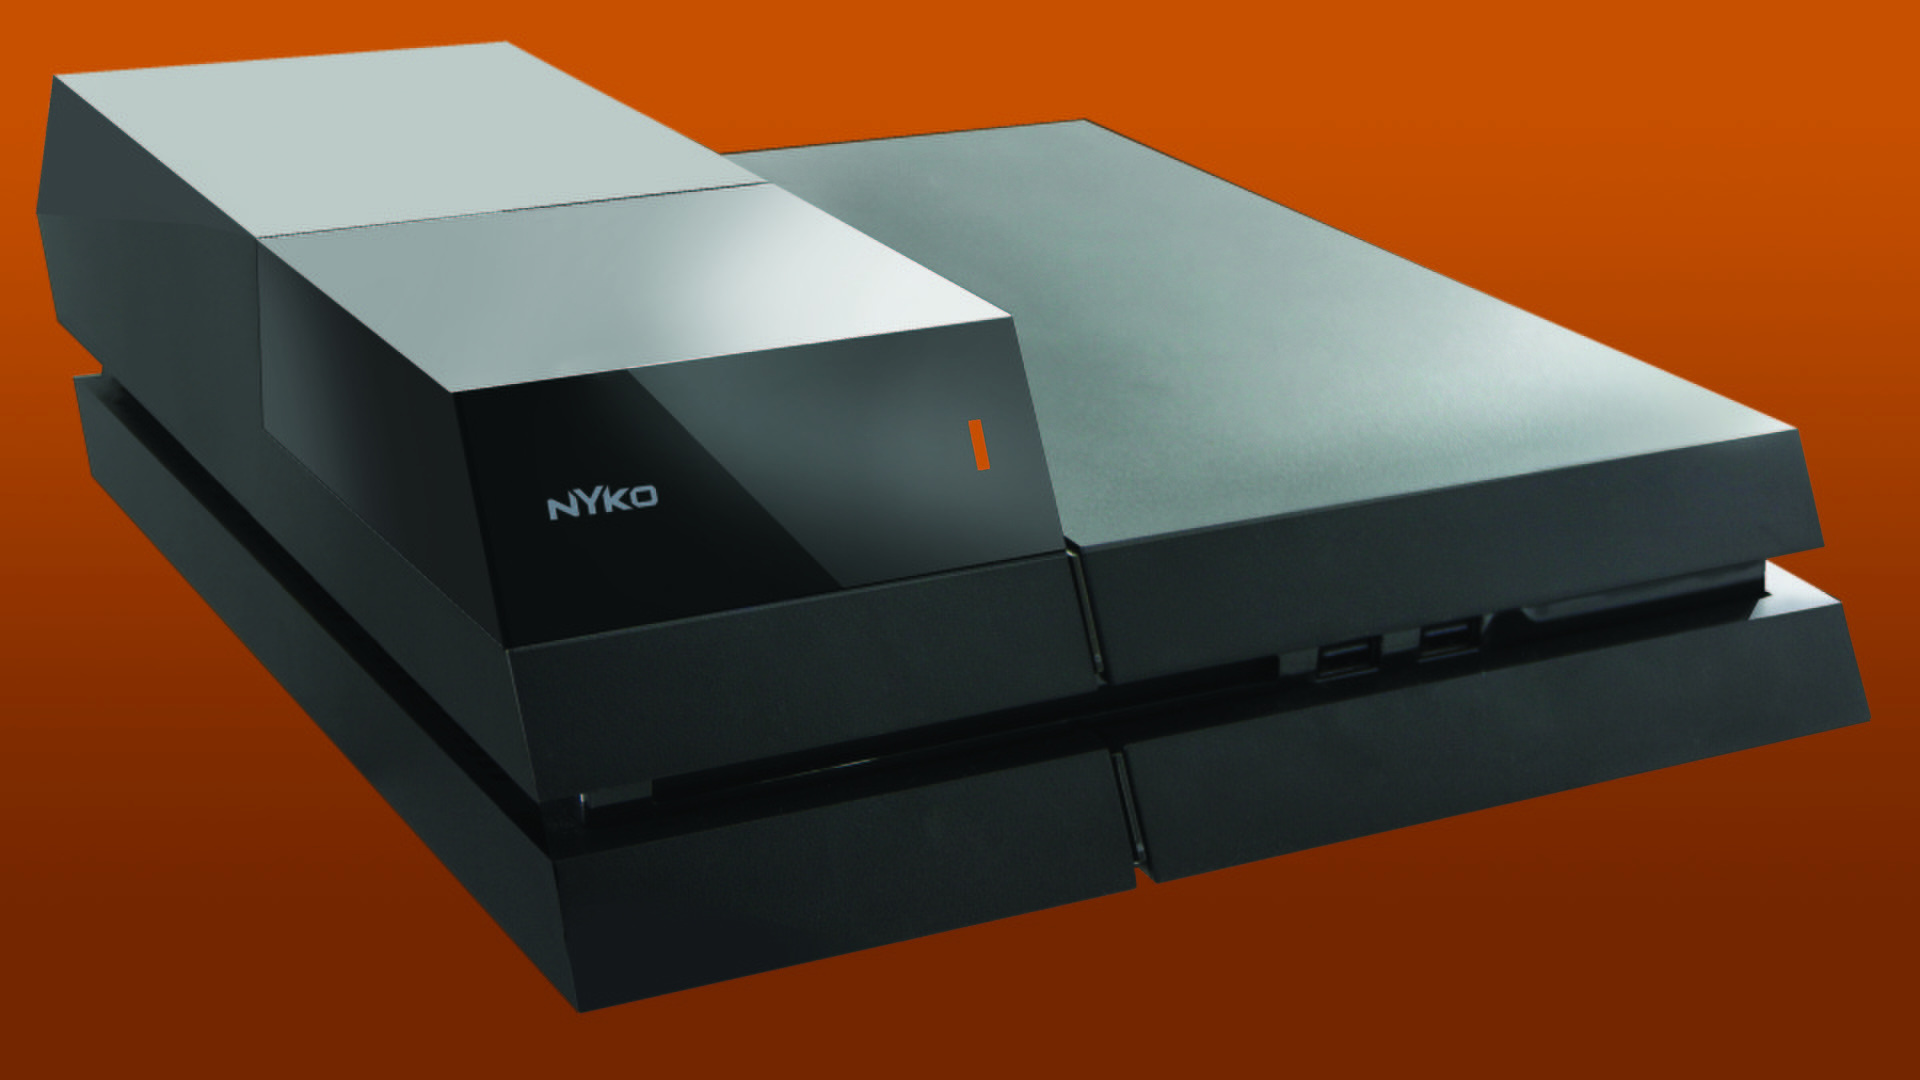 REVIEW NYKO Data Bank For PS4 That VideoGame Blog